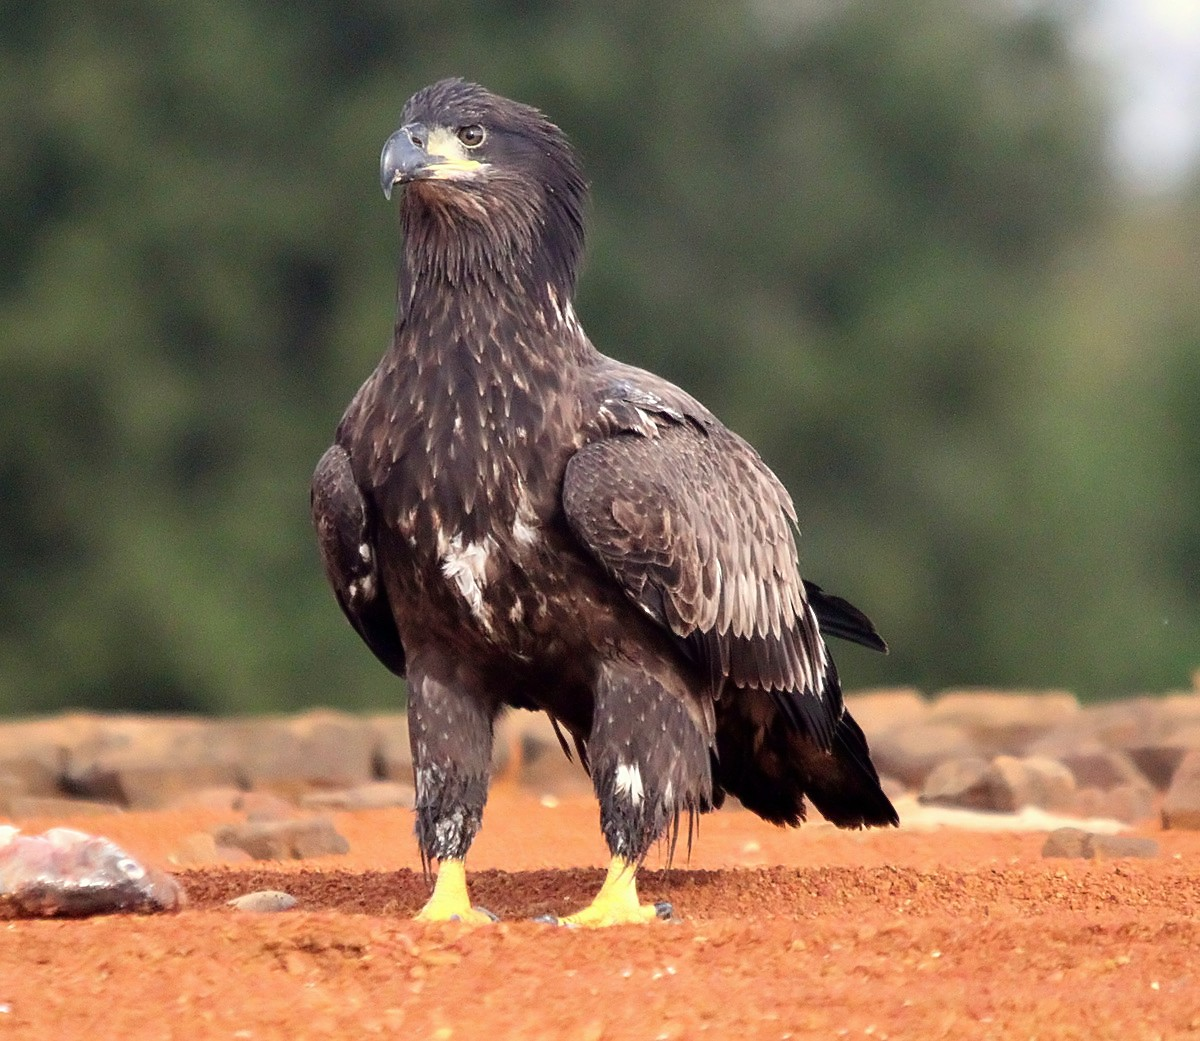 A YOUNG EAGLE